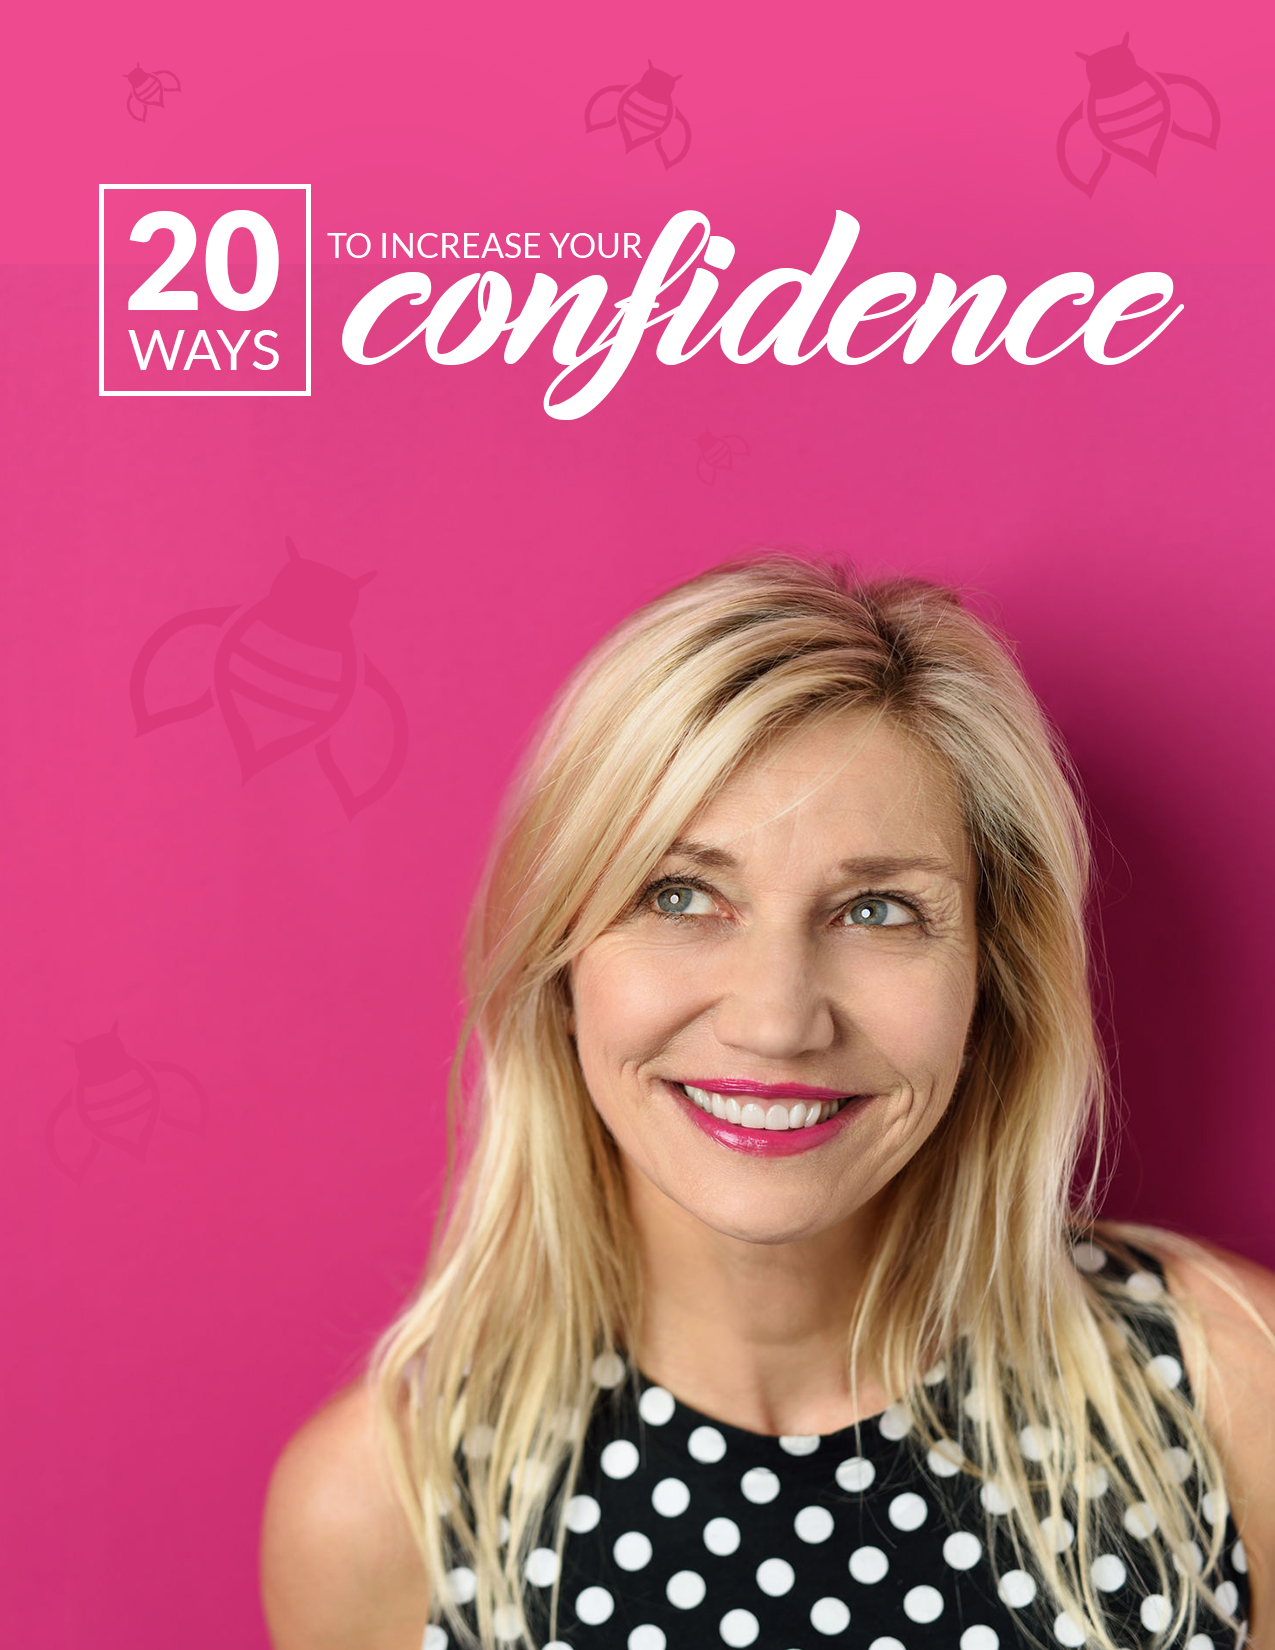 20 Way To Increase Your Confidence